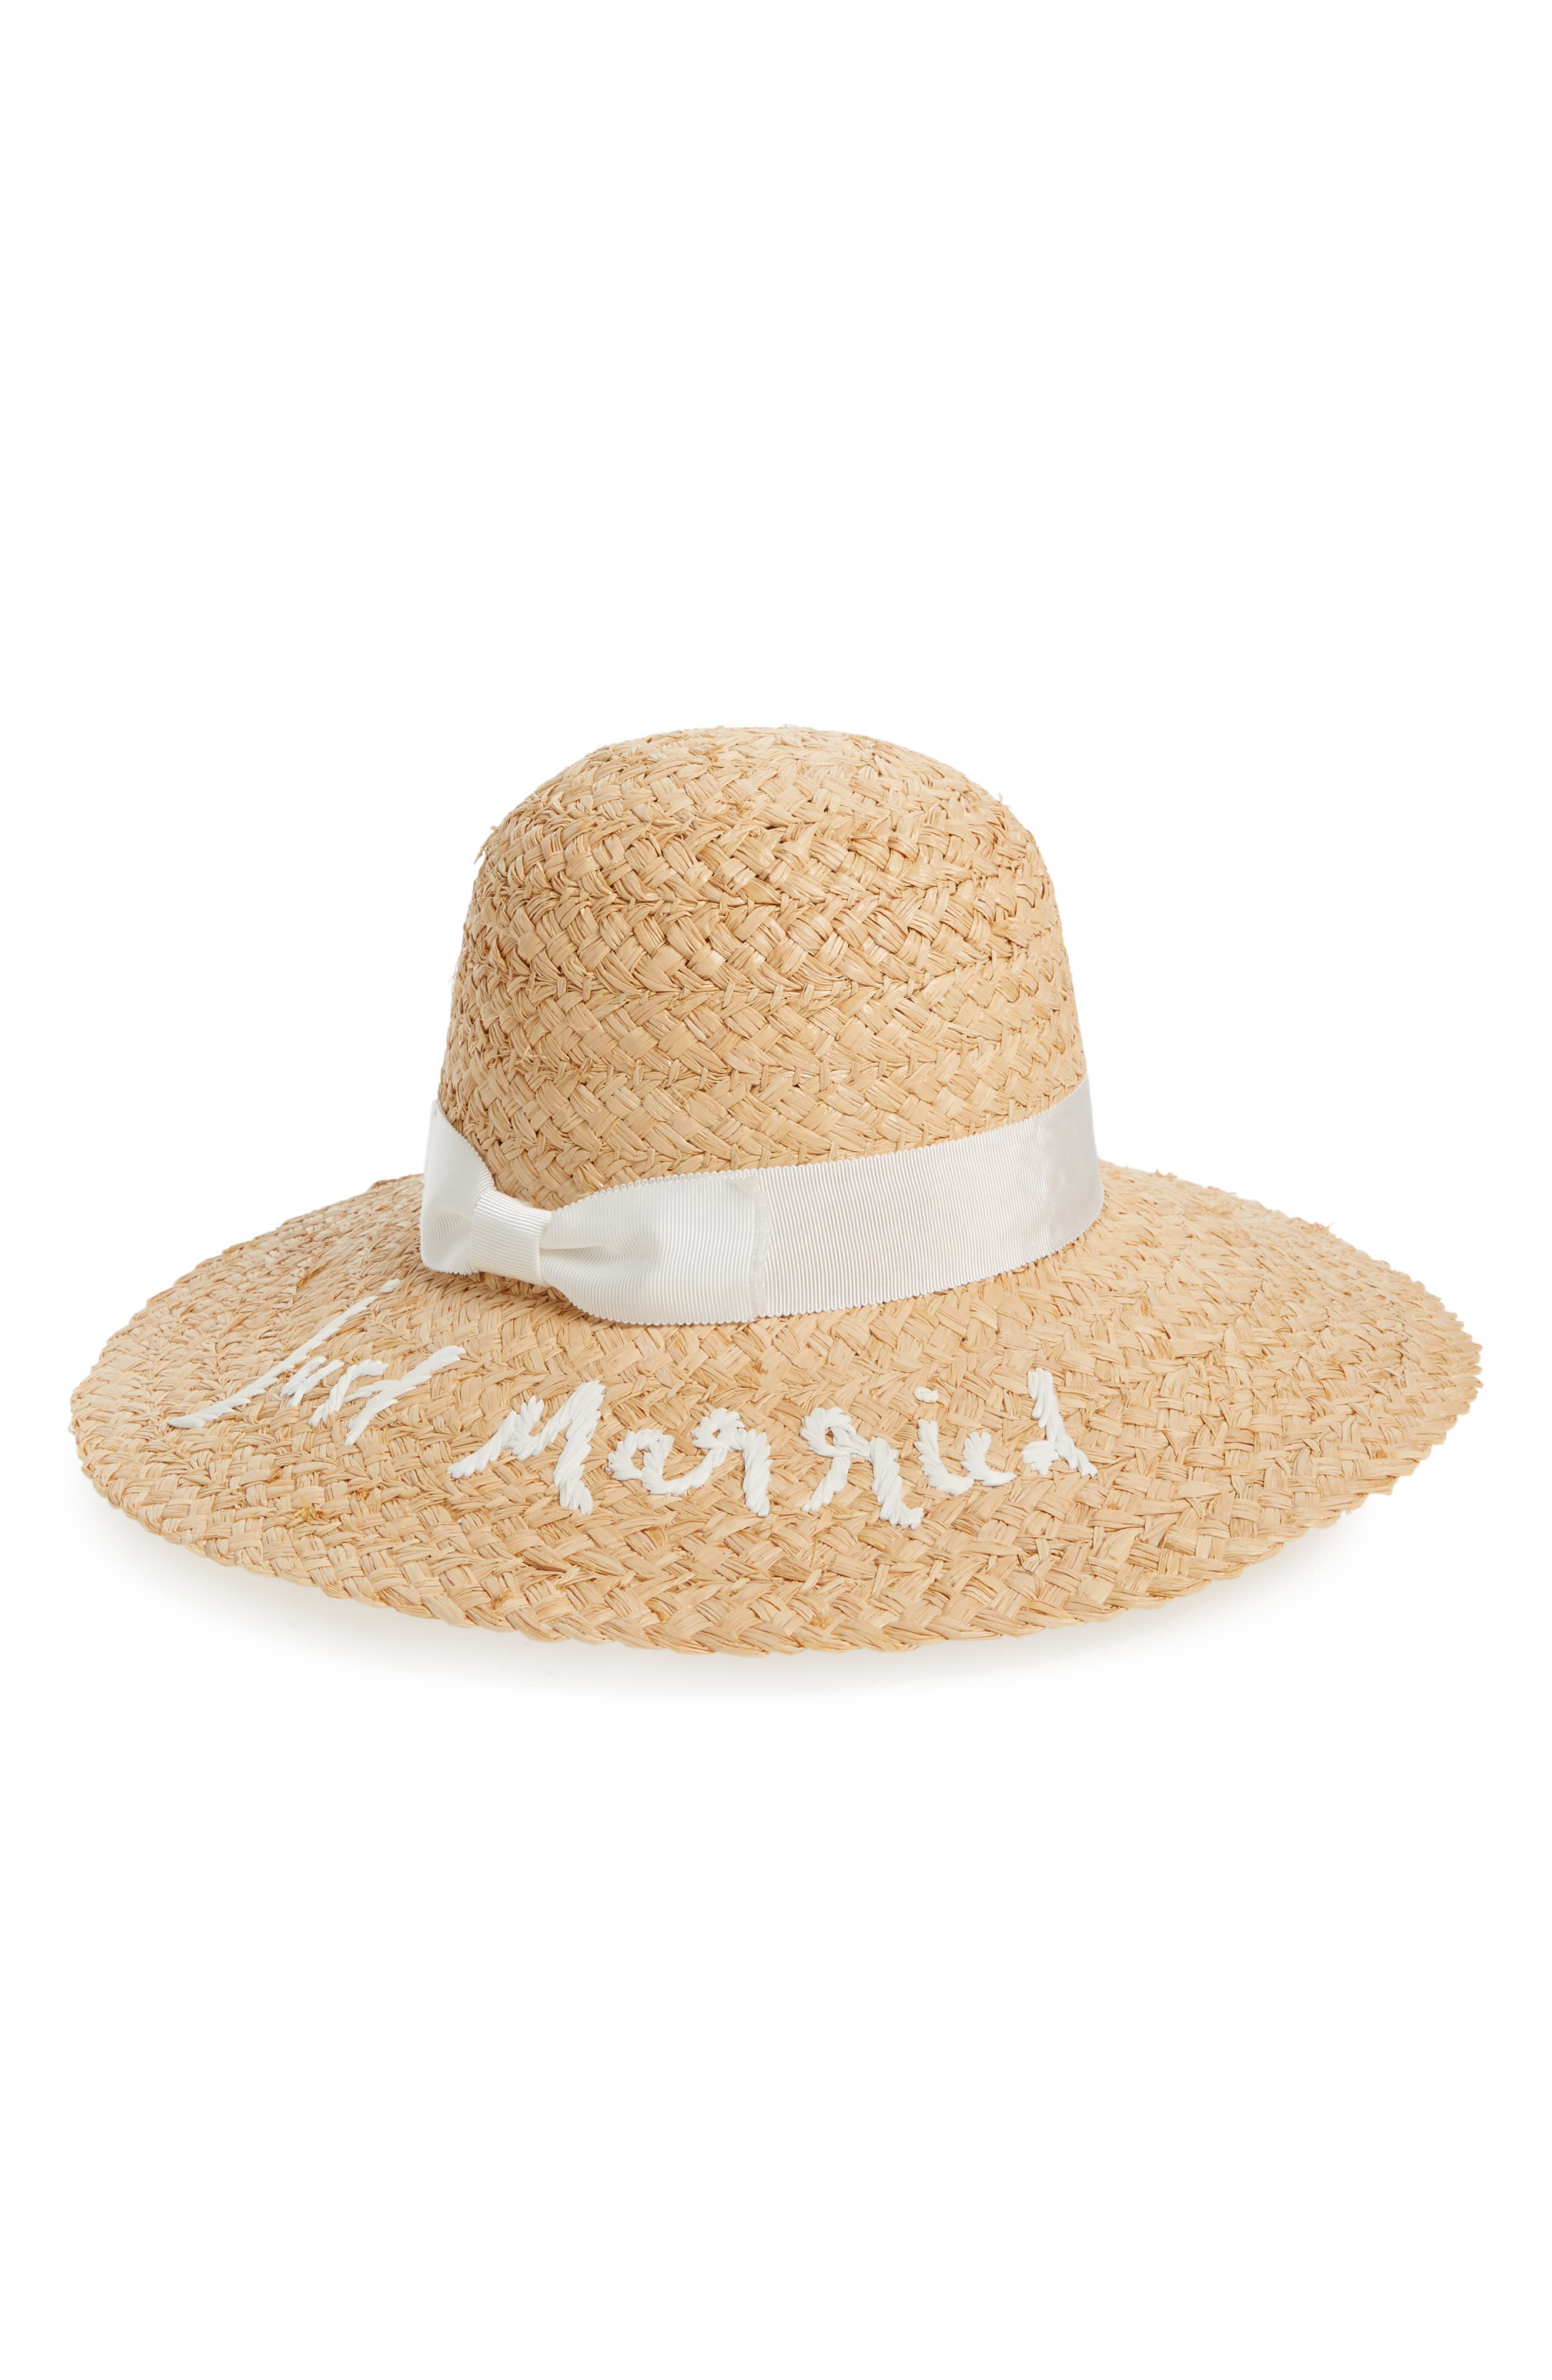 just married straw hat,                             Main thumbnail 1, color,                             200